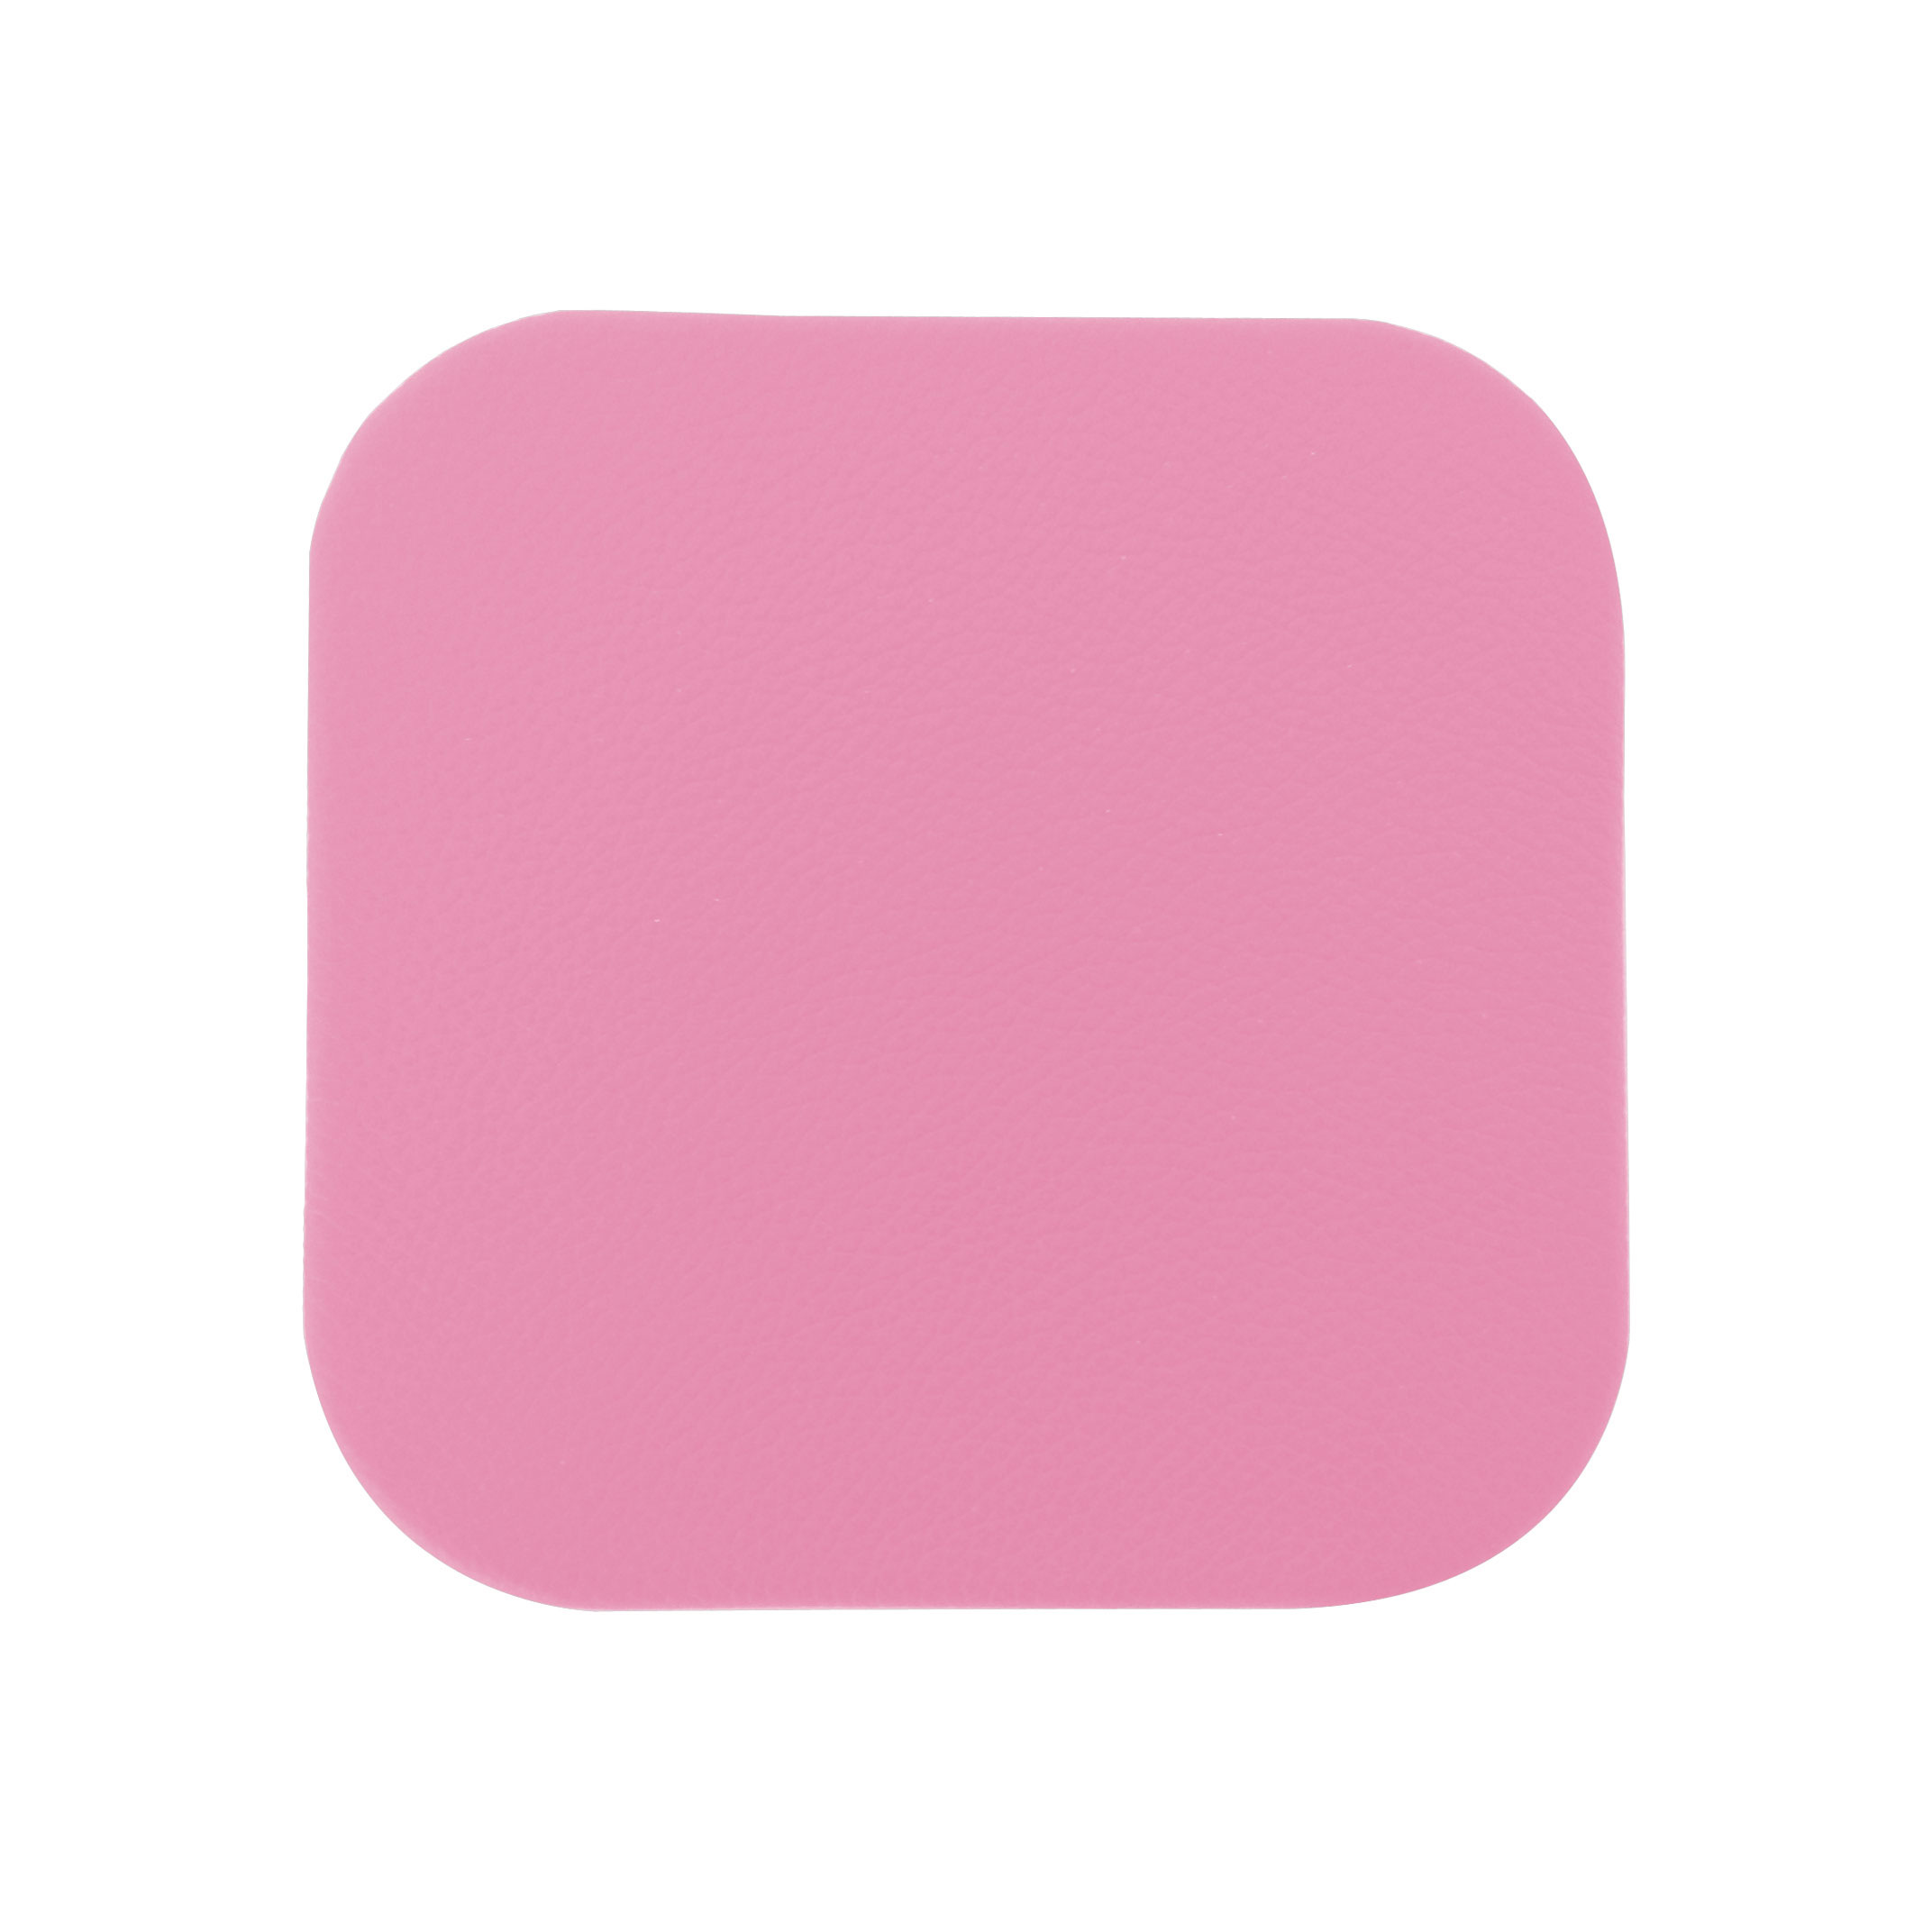 Pink Leather Drink Coasters Individual Coaster Sets For